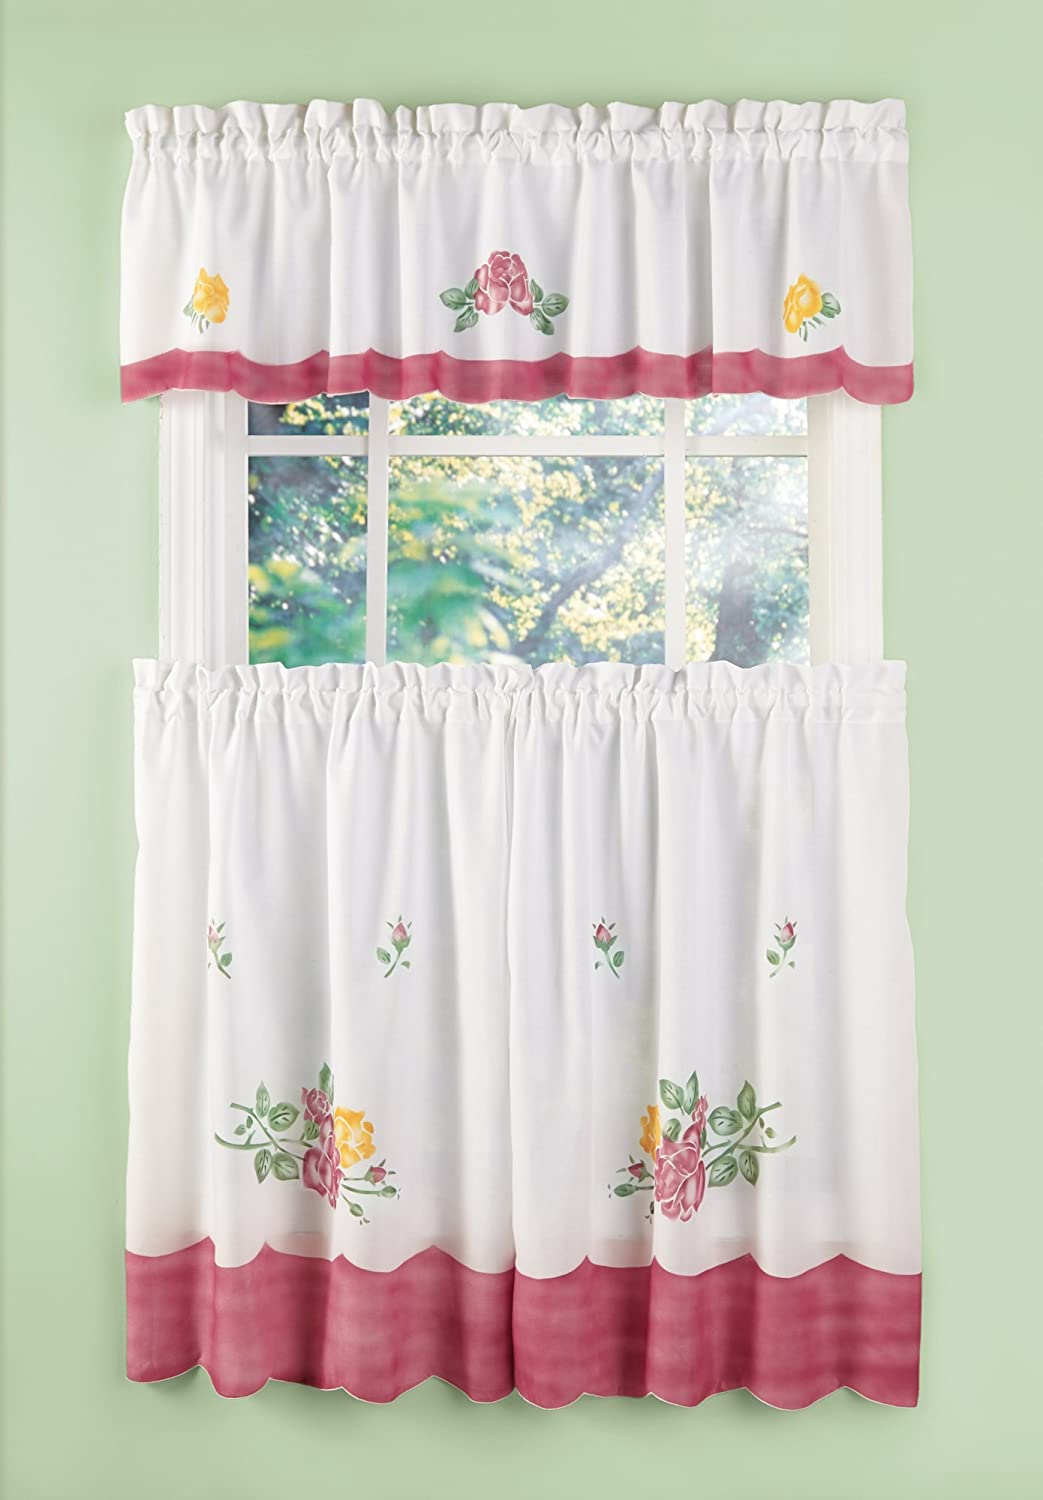 Buy Kitchen Curtains Cafe Curtain Set 3 Piece Floral Drapery Collection Online At Low Prices In India Amazon In